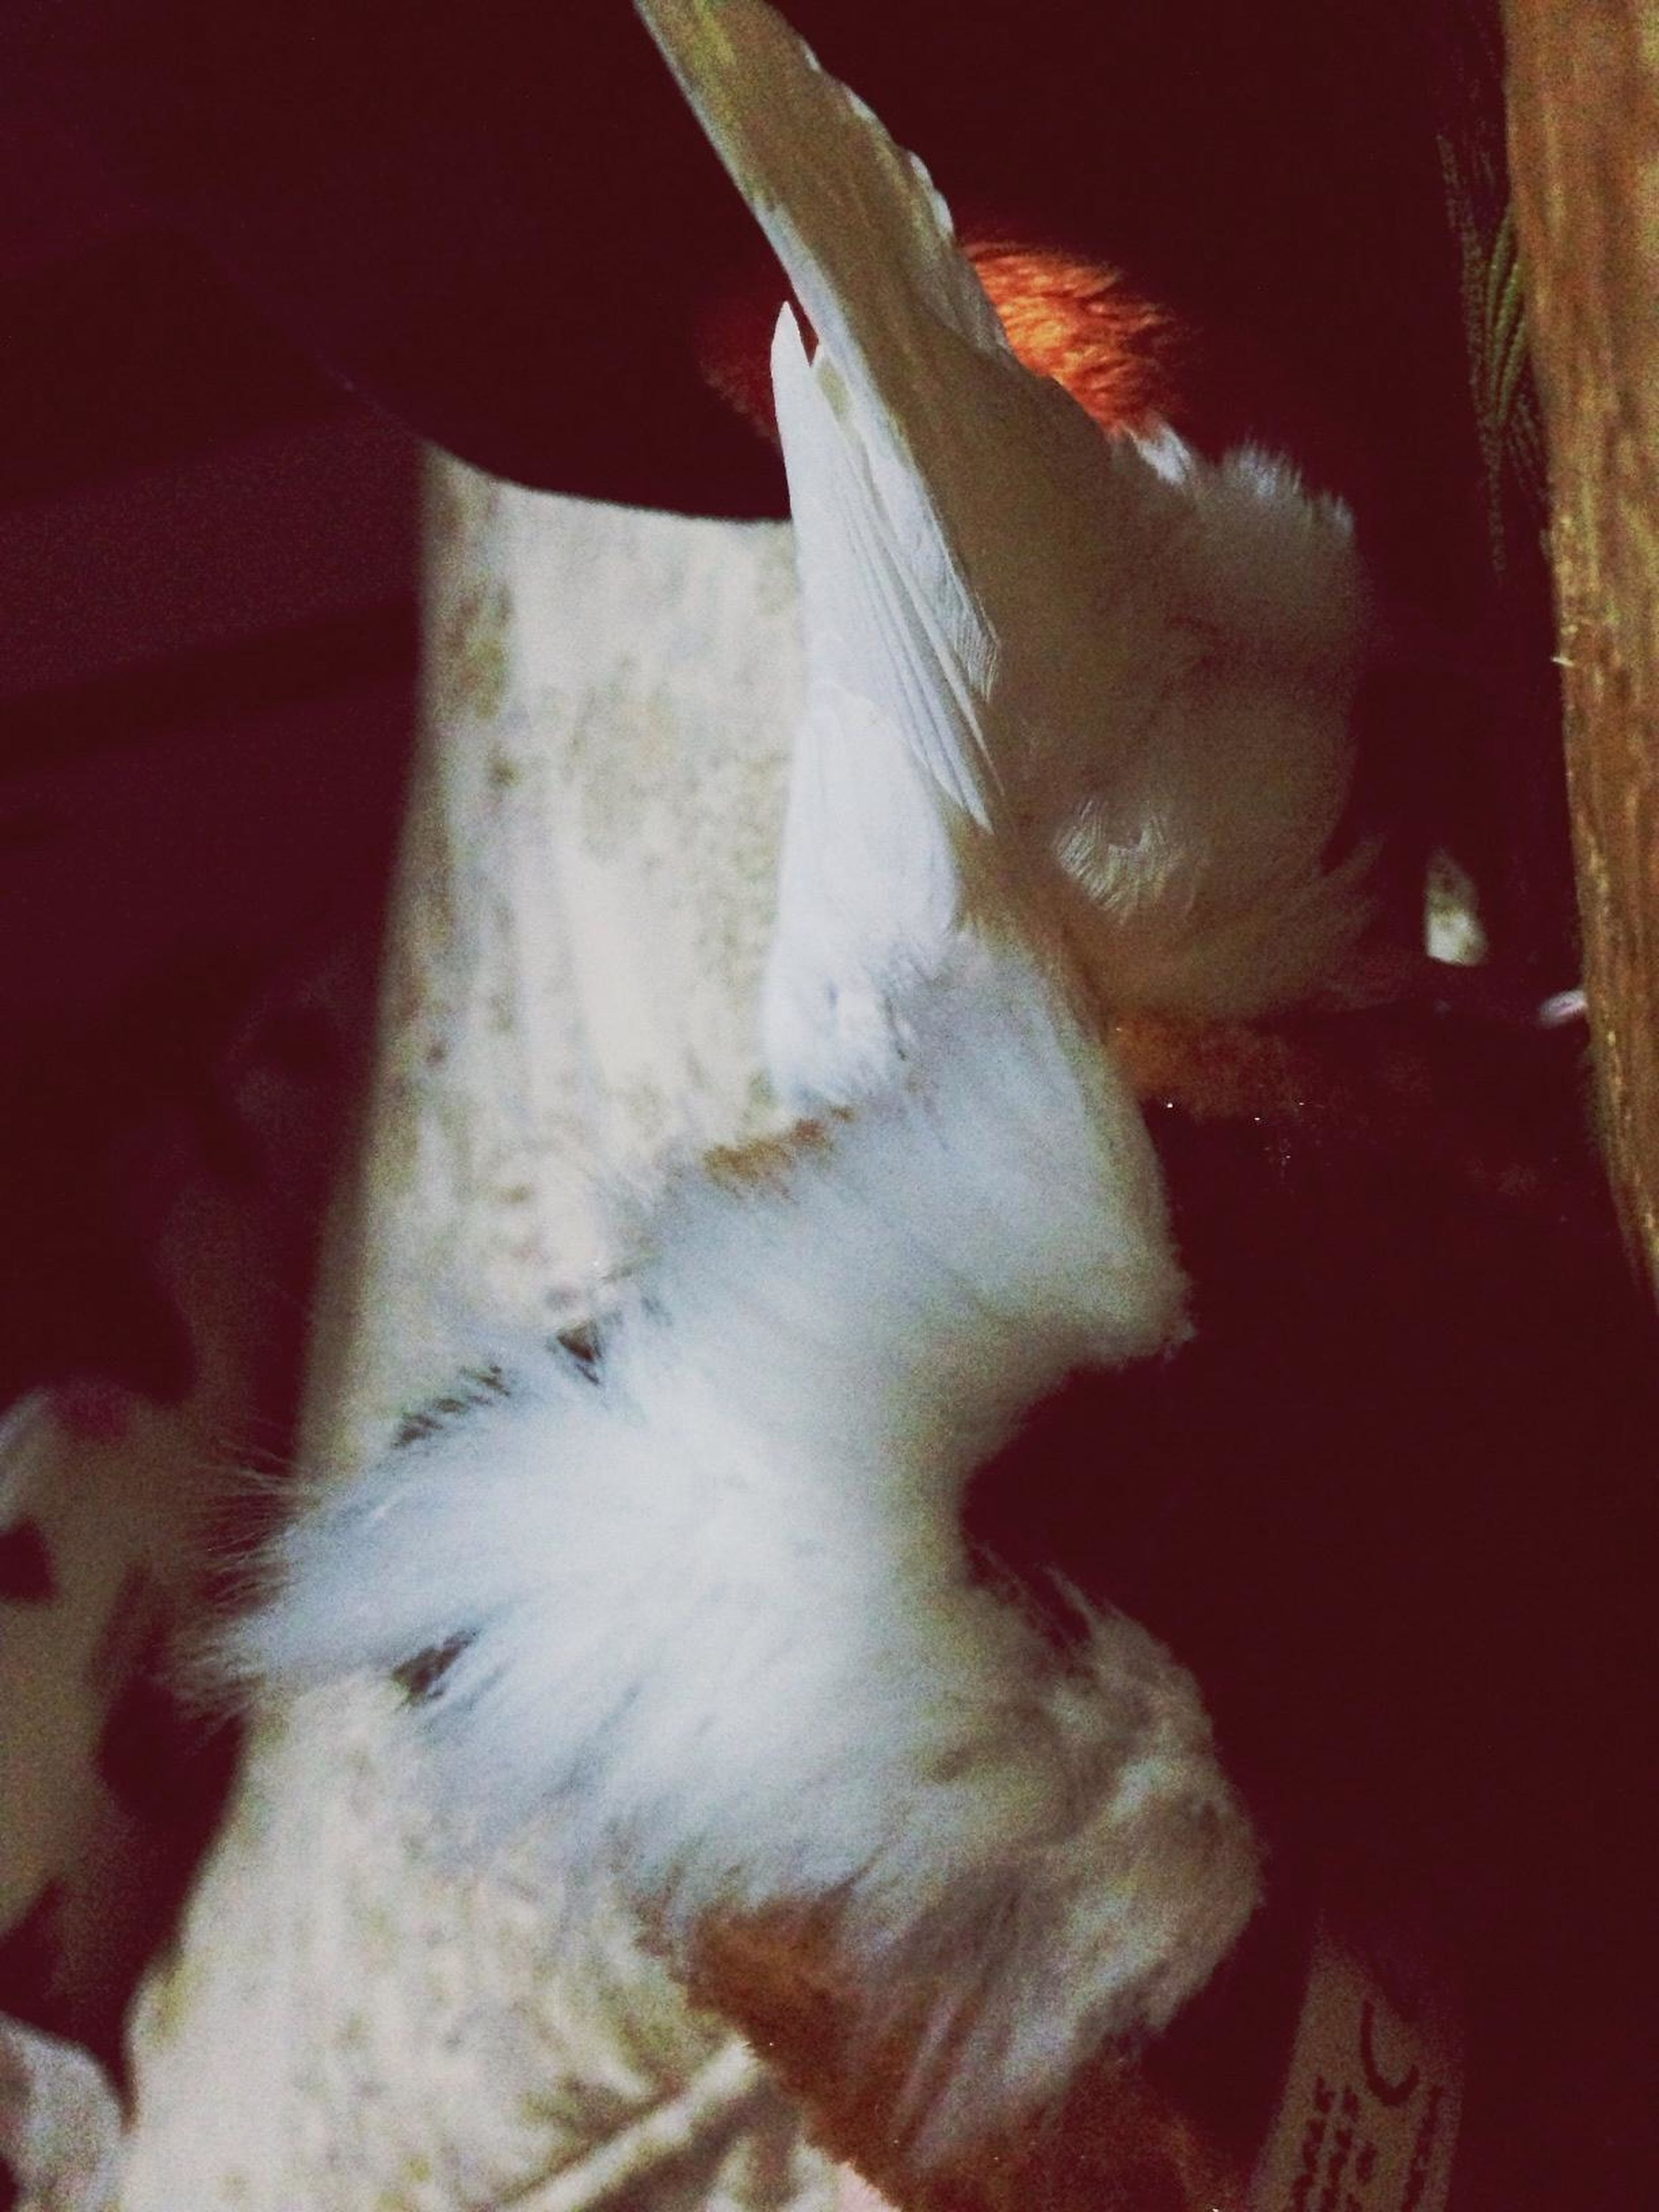 animal themes, domestic animals, one animal, mammal, pets, white color, indoors, domestic cat, close-up, part of, high angle view, cat, animal body part, animal head, dog, bird, cropped, no people, feline, livestock